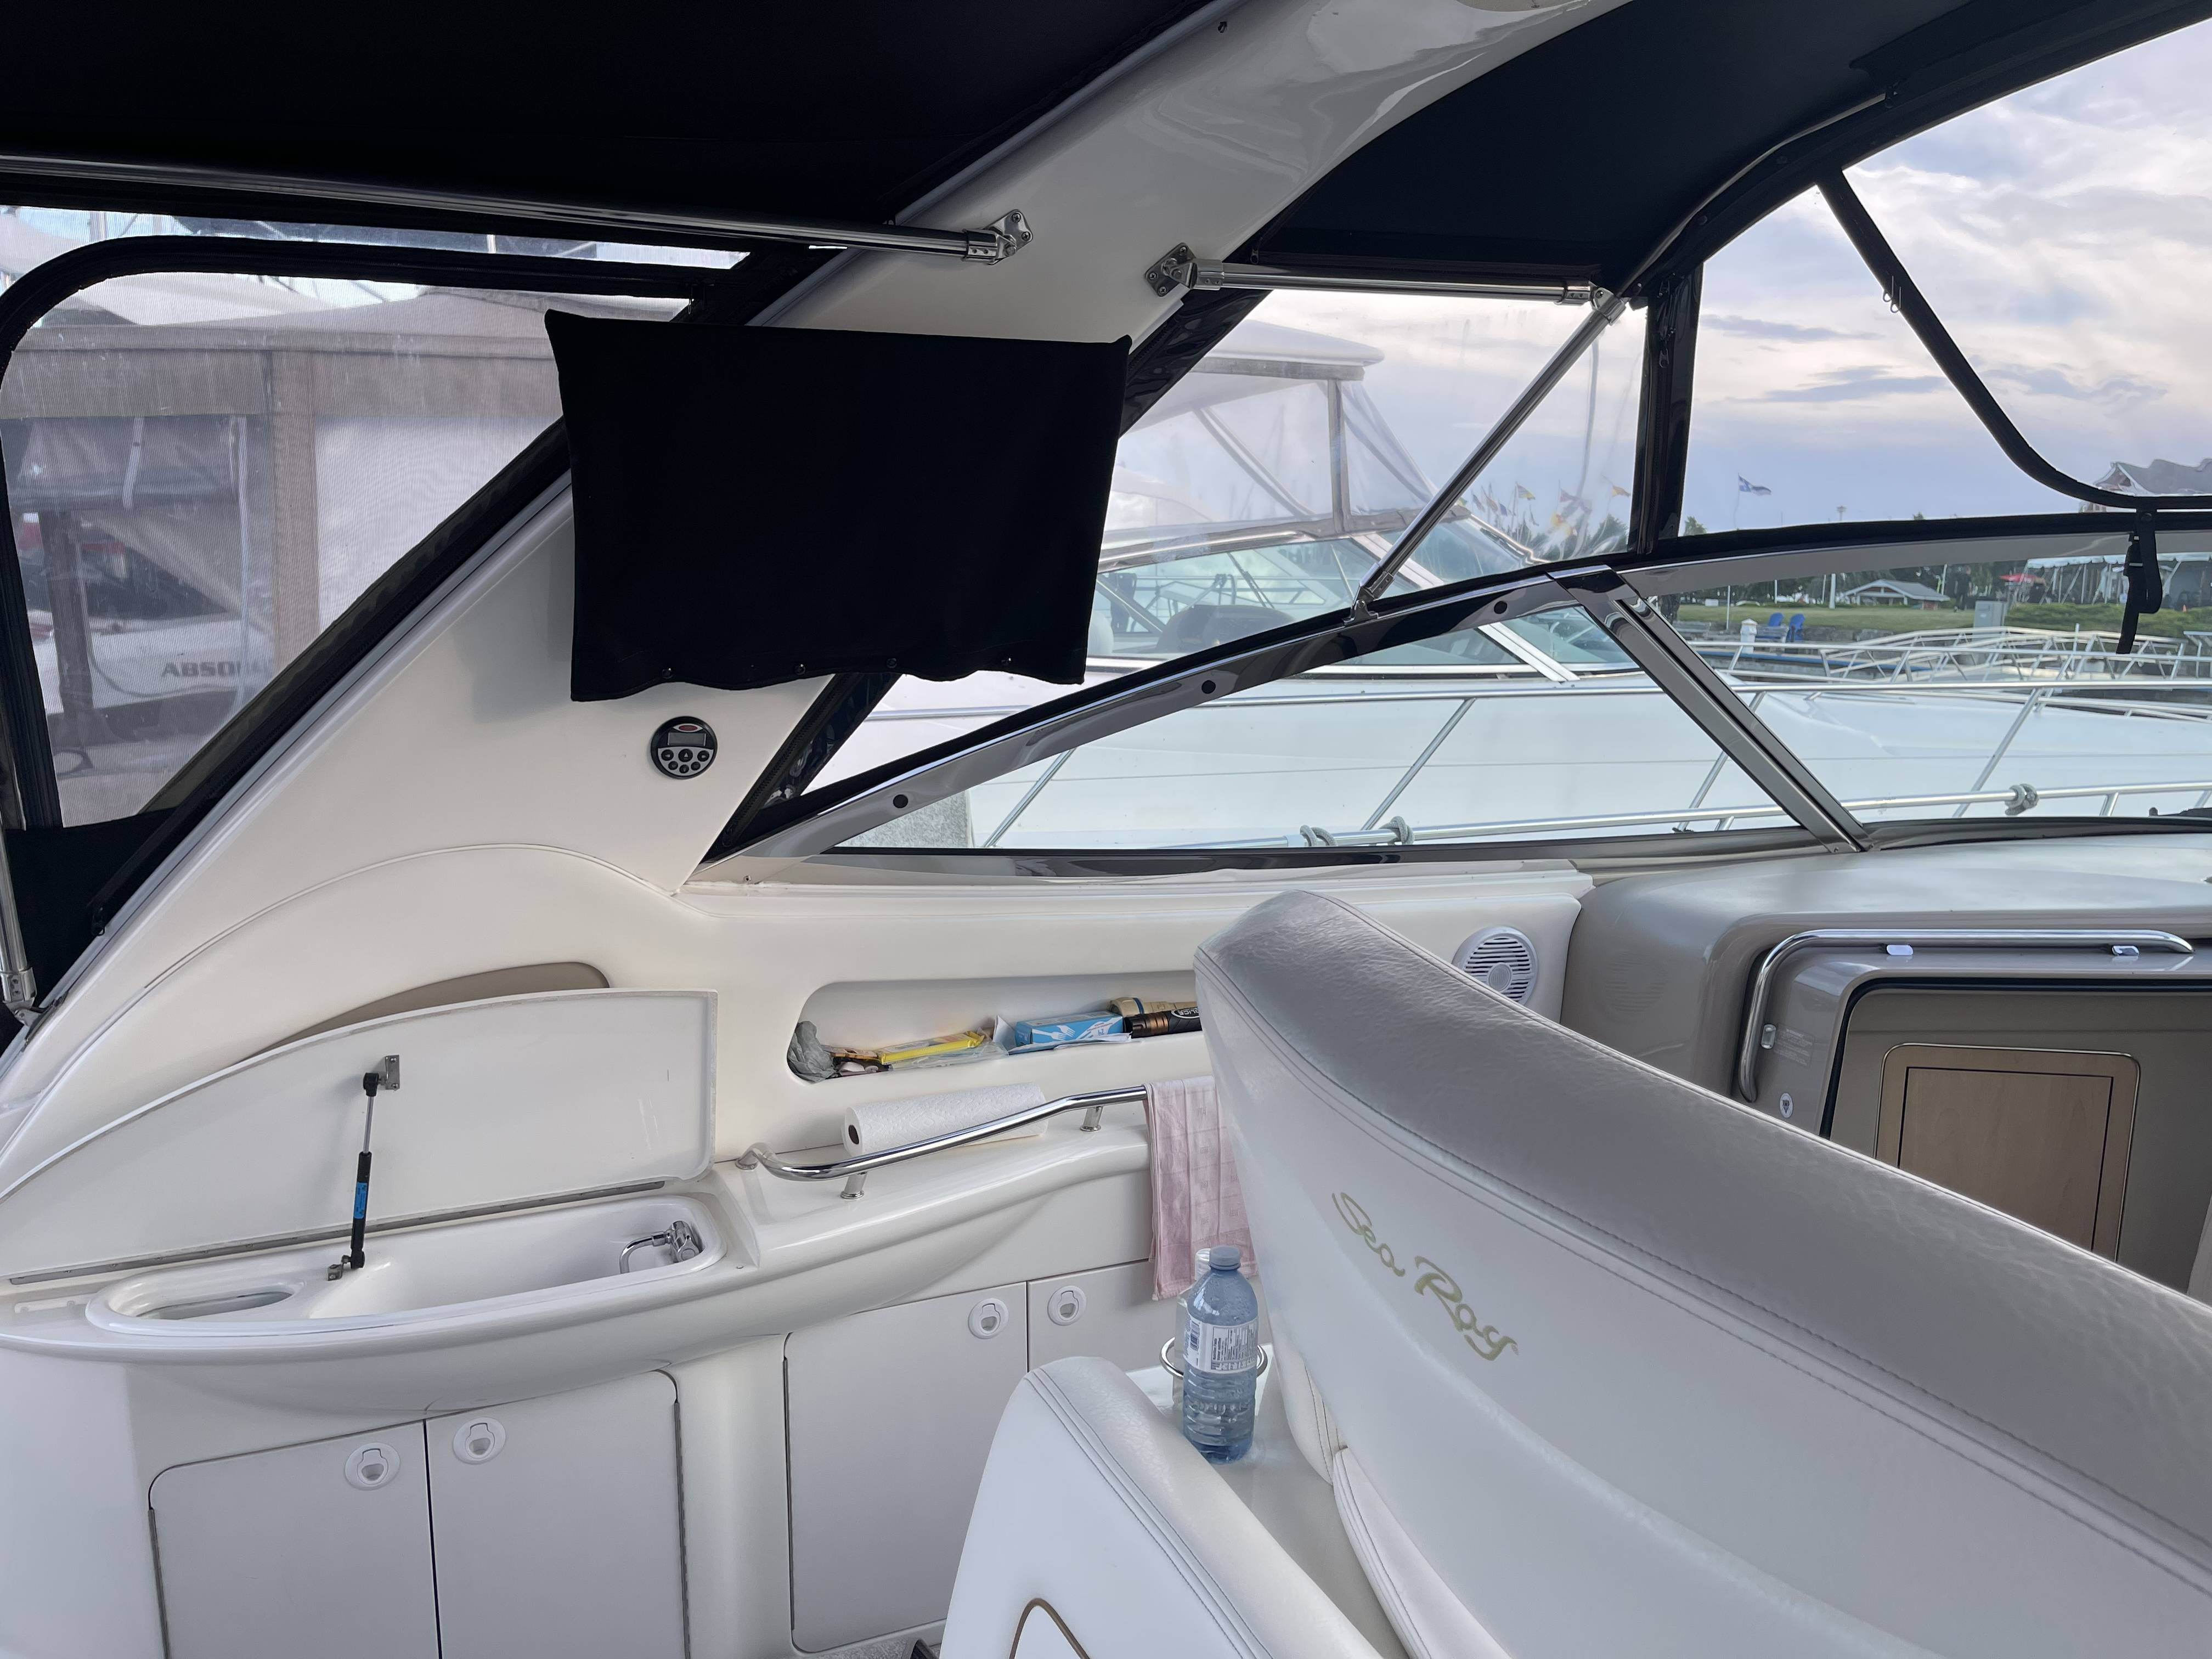 1999 Sea Ray boat for sale, model of the boat is 460 SUNDANCER & Image # 13 of 48